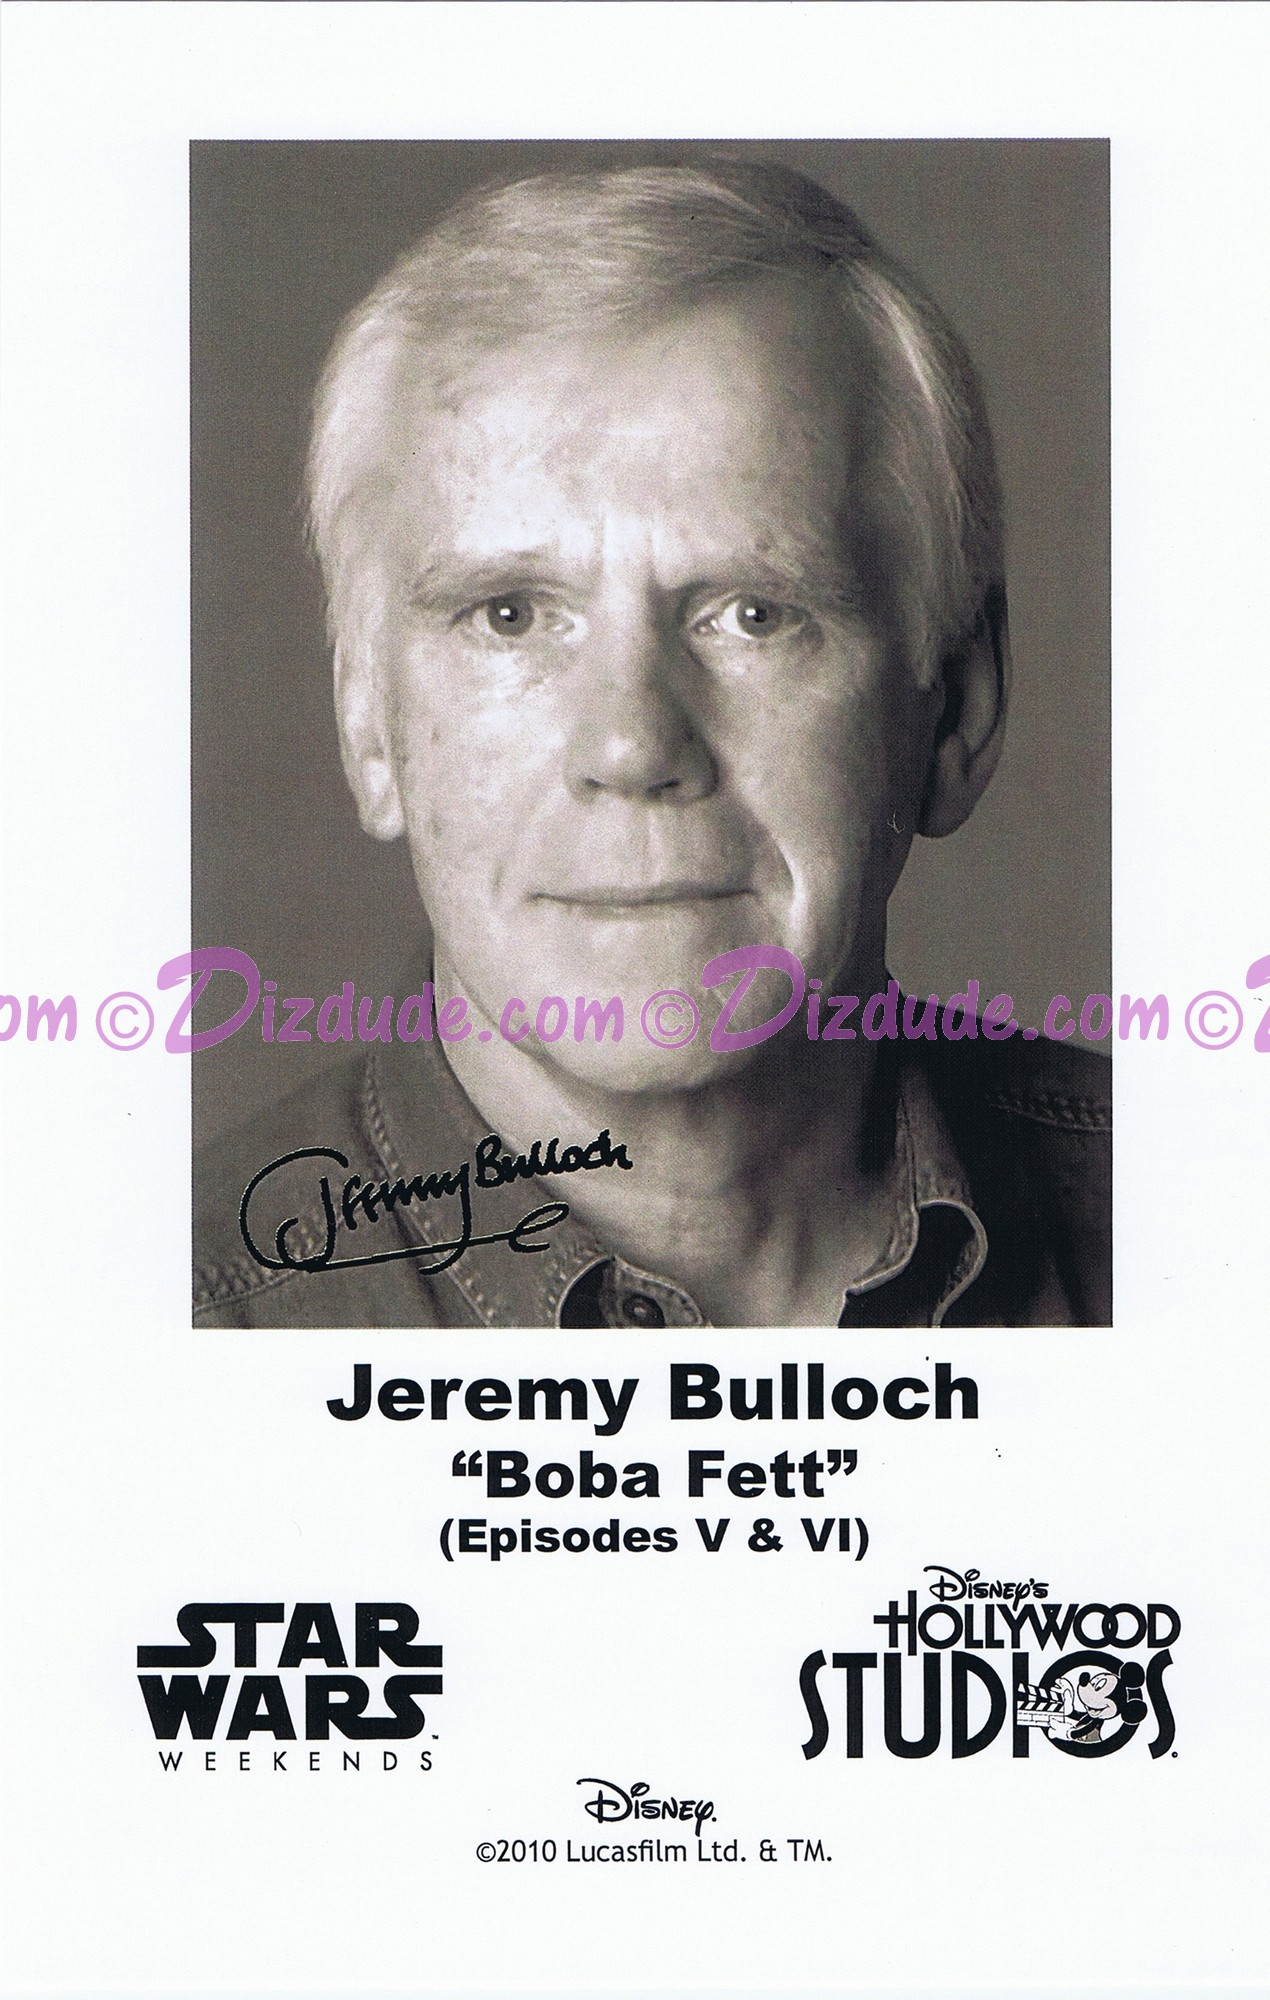 Jeremy Bulloch who played Boba Fett Presigned Official Star Wars Weekends 2010 Celebrity Collector Photo